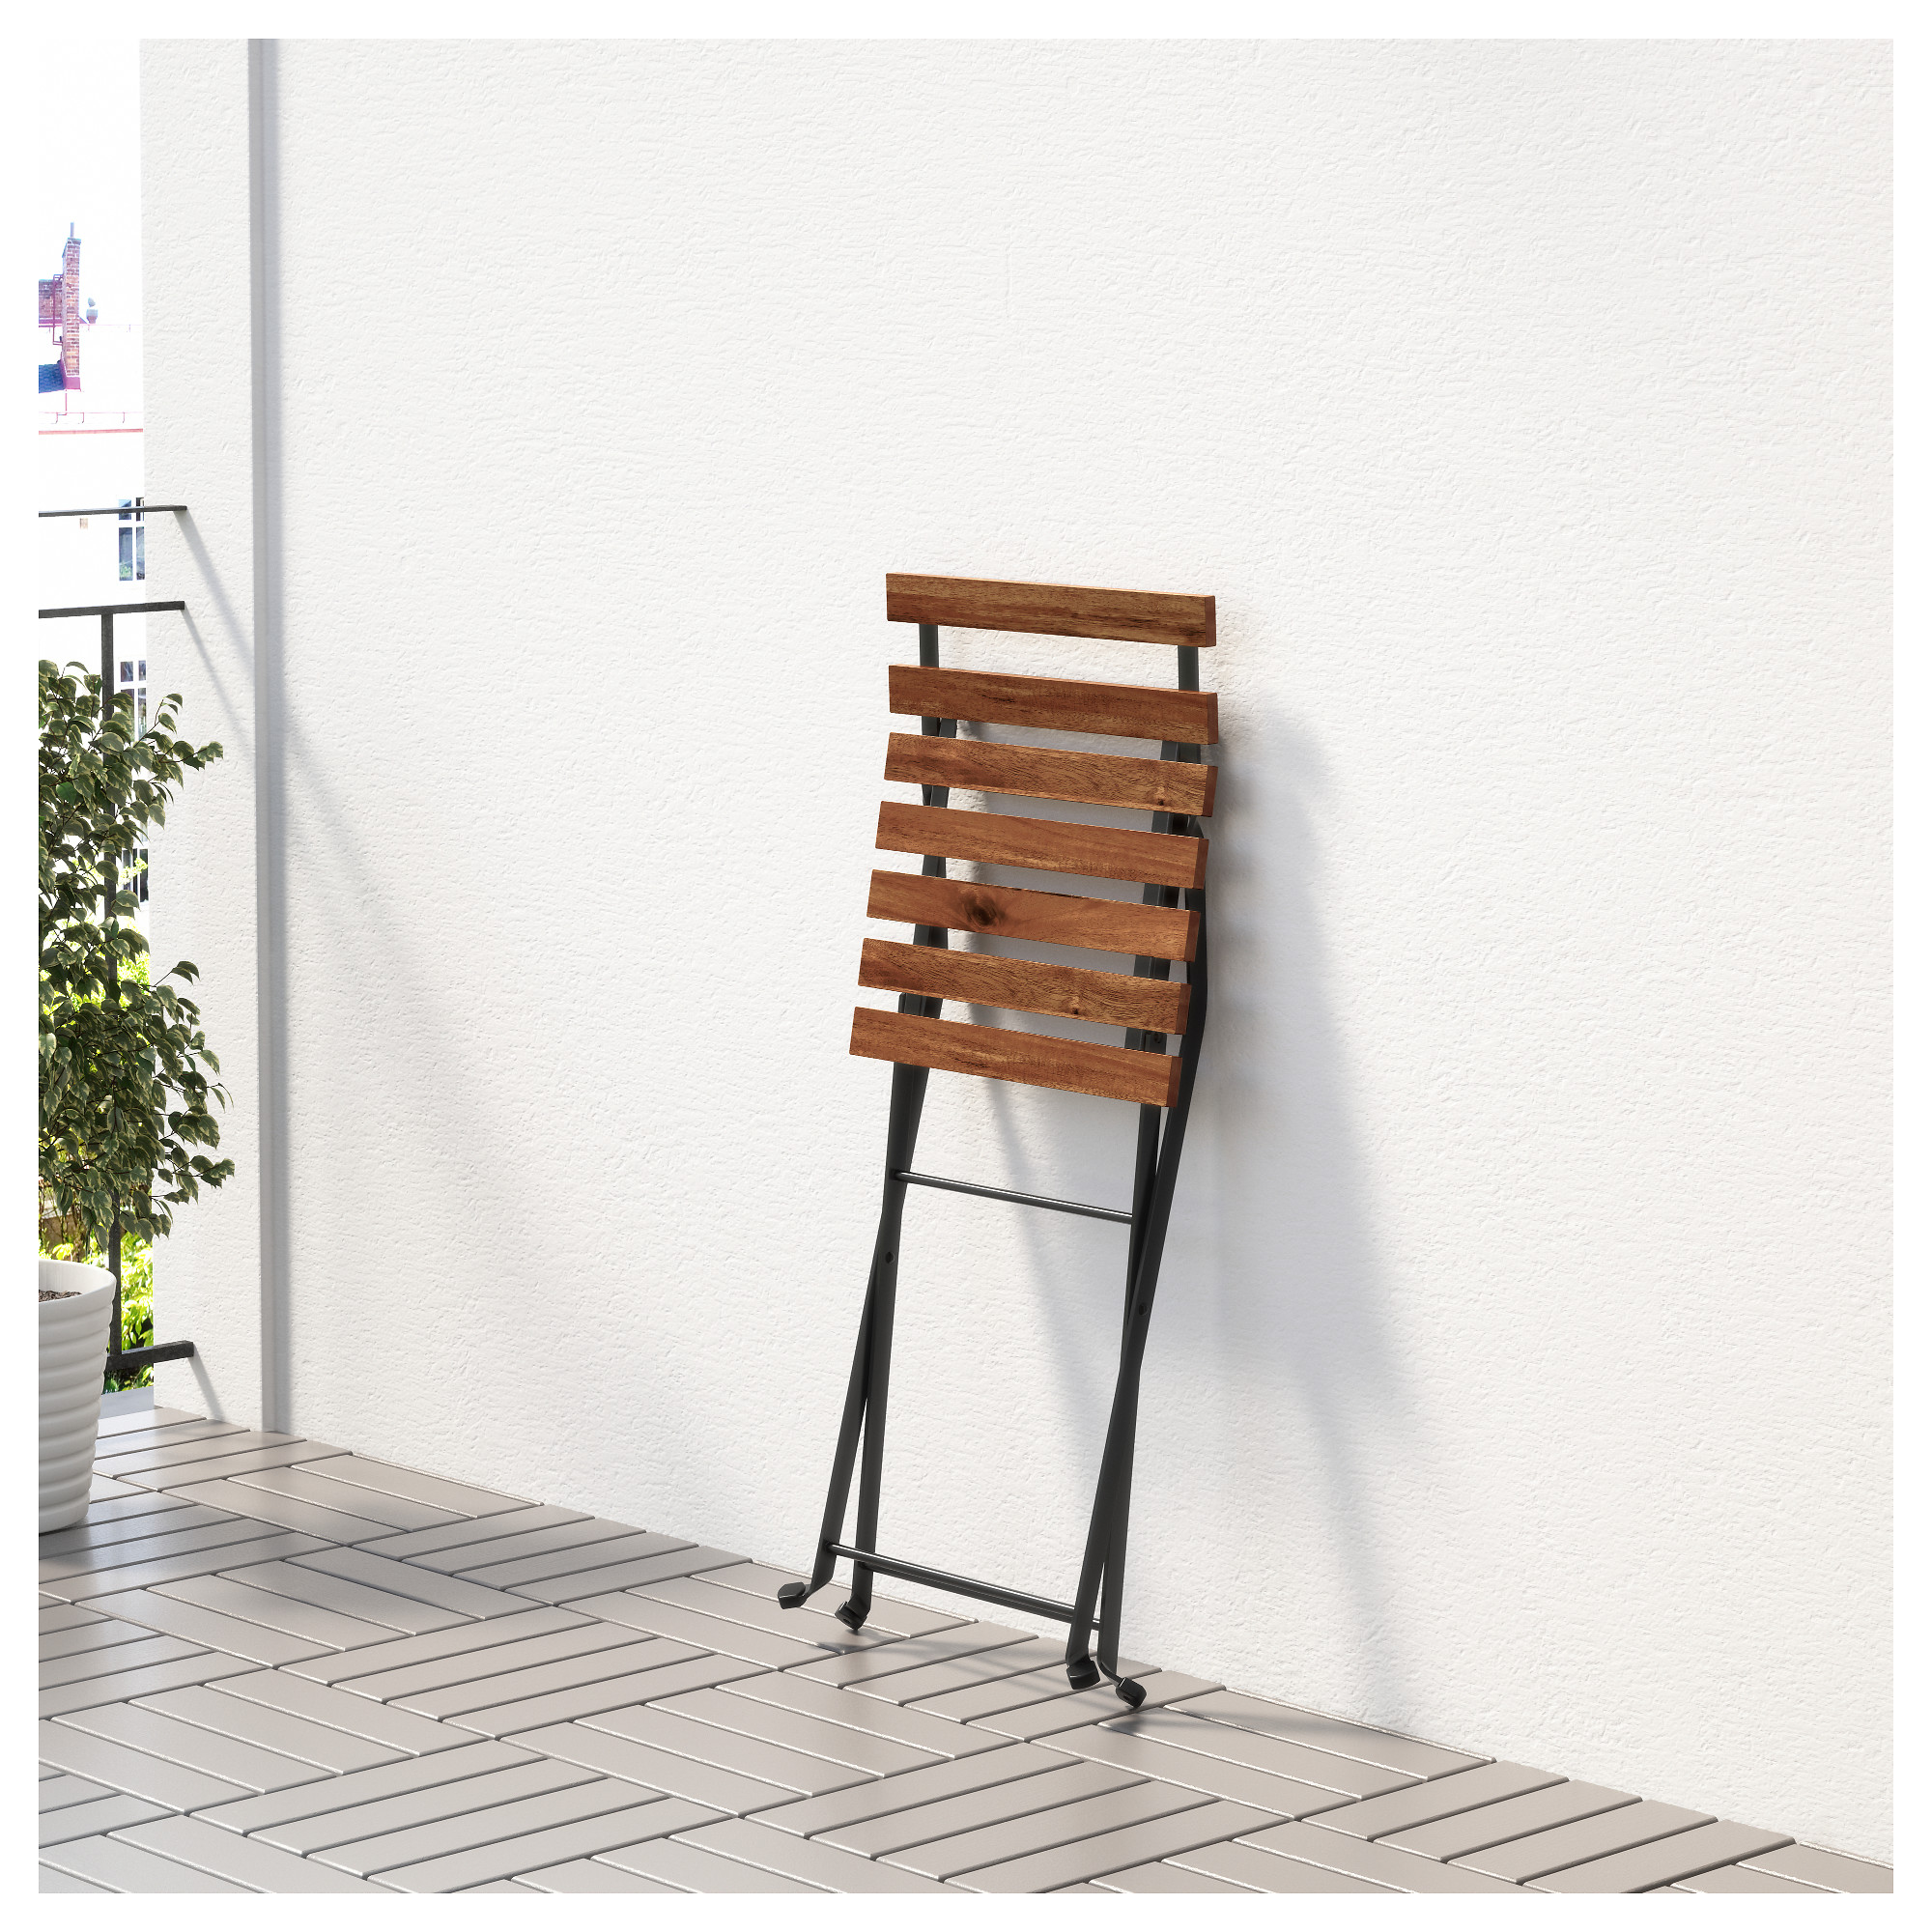 Trn chair outdoor ikea malvernweather Image collections